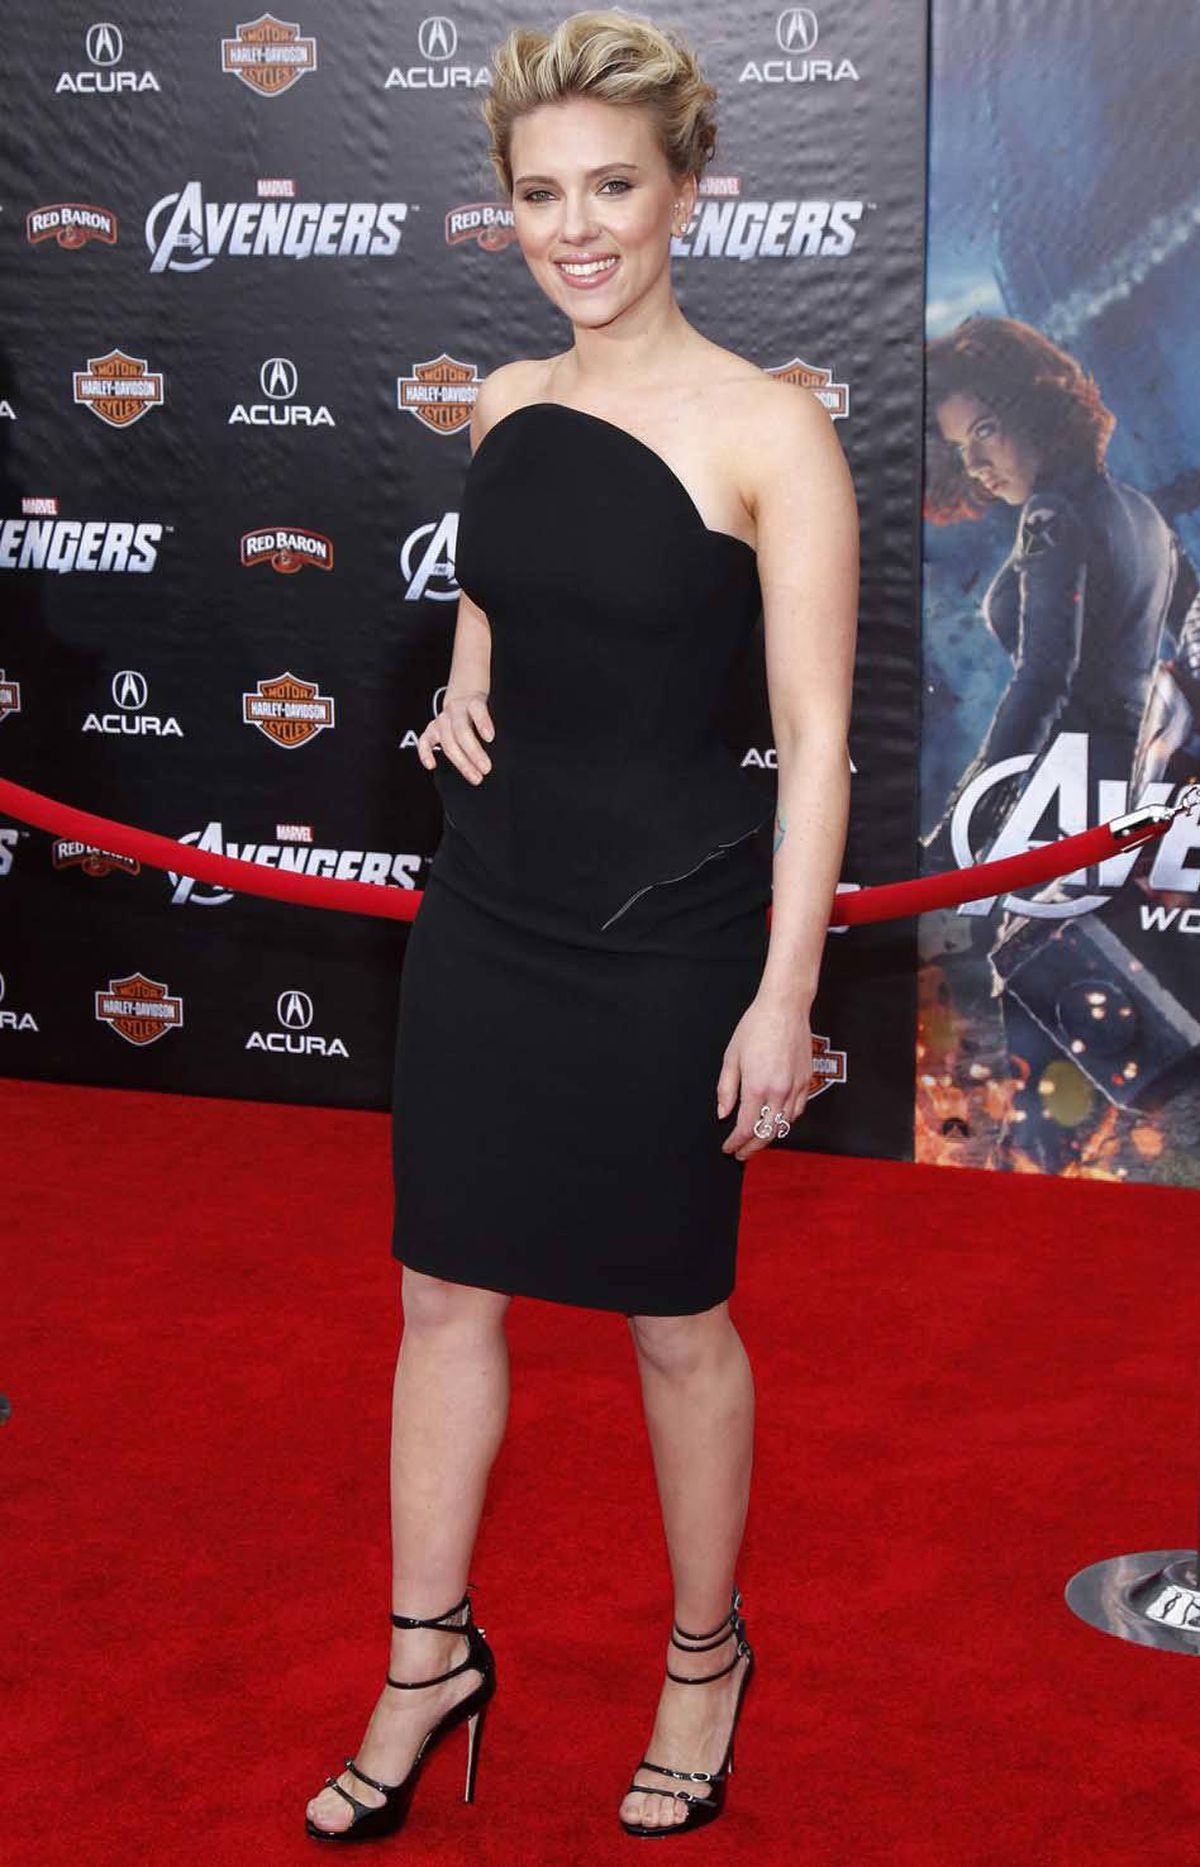 """Scarlett Johansson was the picture of class and poise at the premiere of """"Marvel's The Avengers"""" in Hollywood last week."""